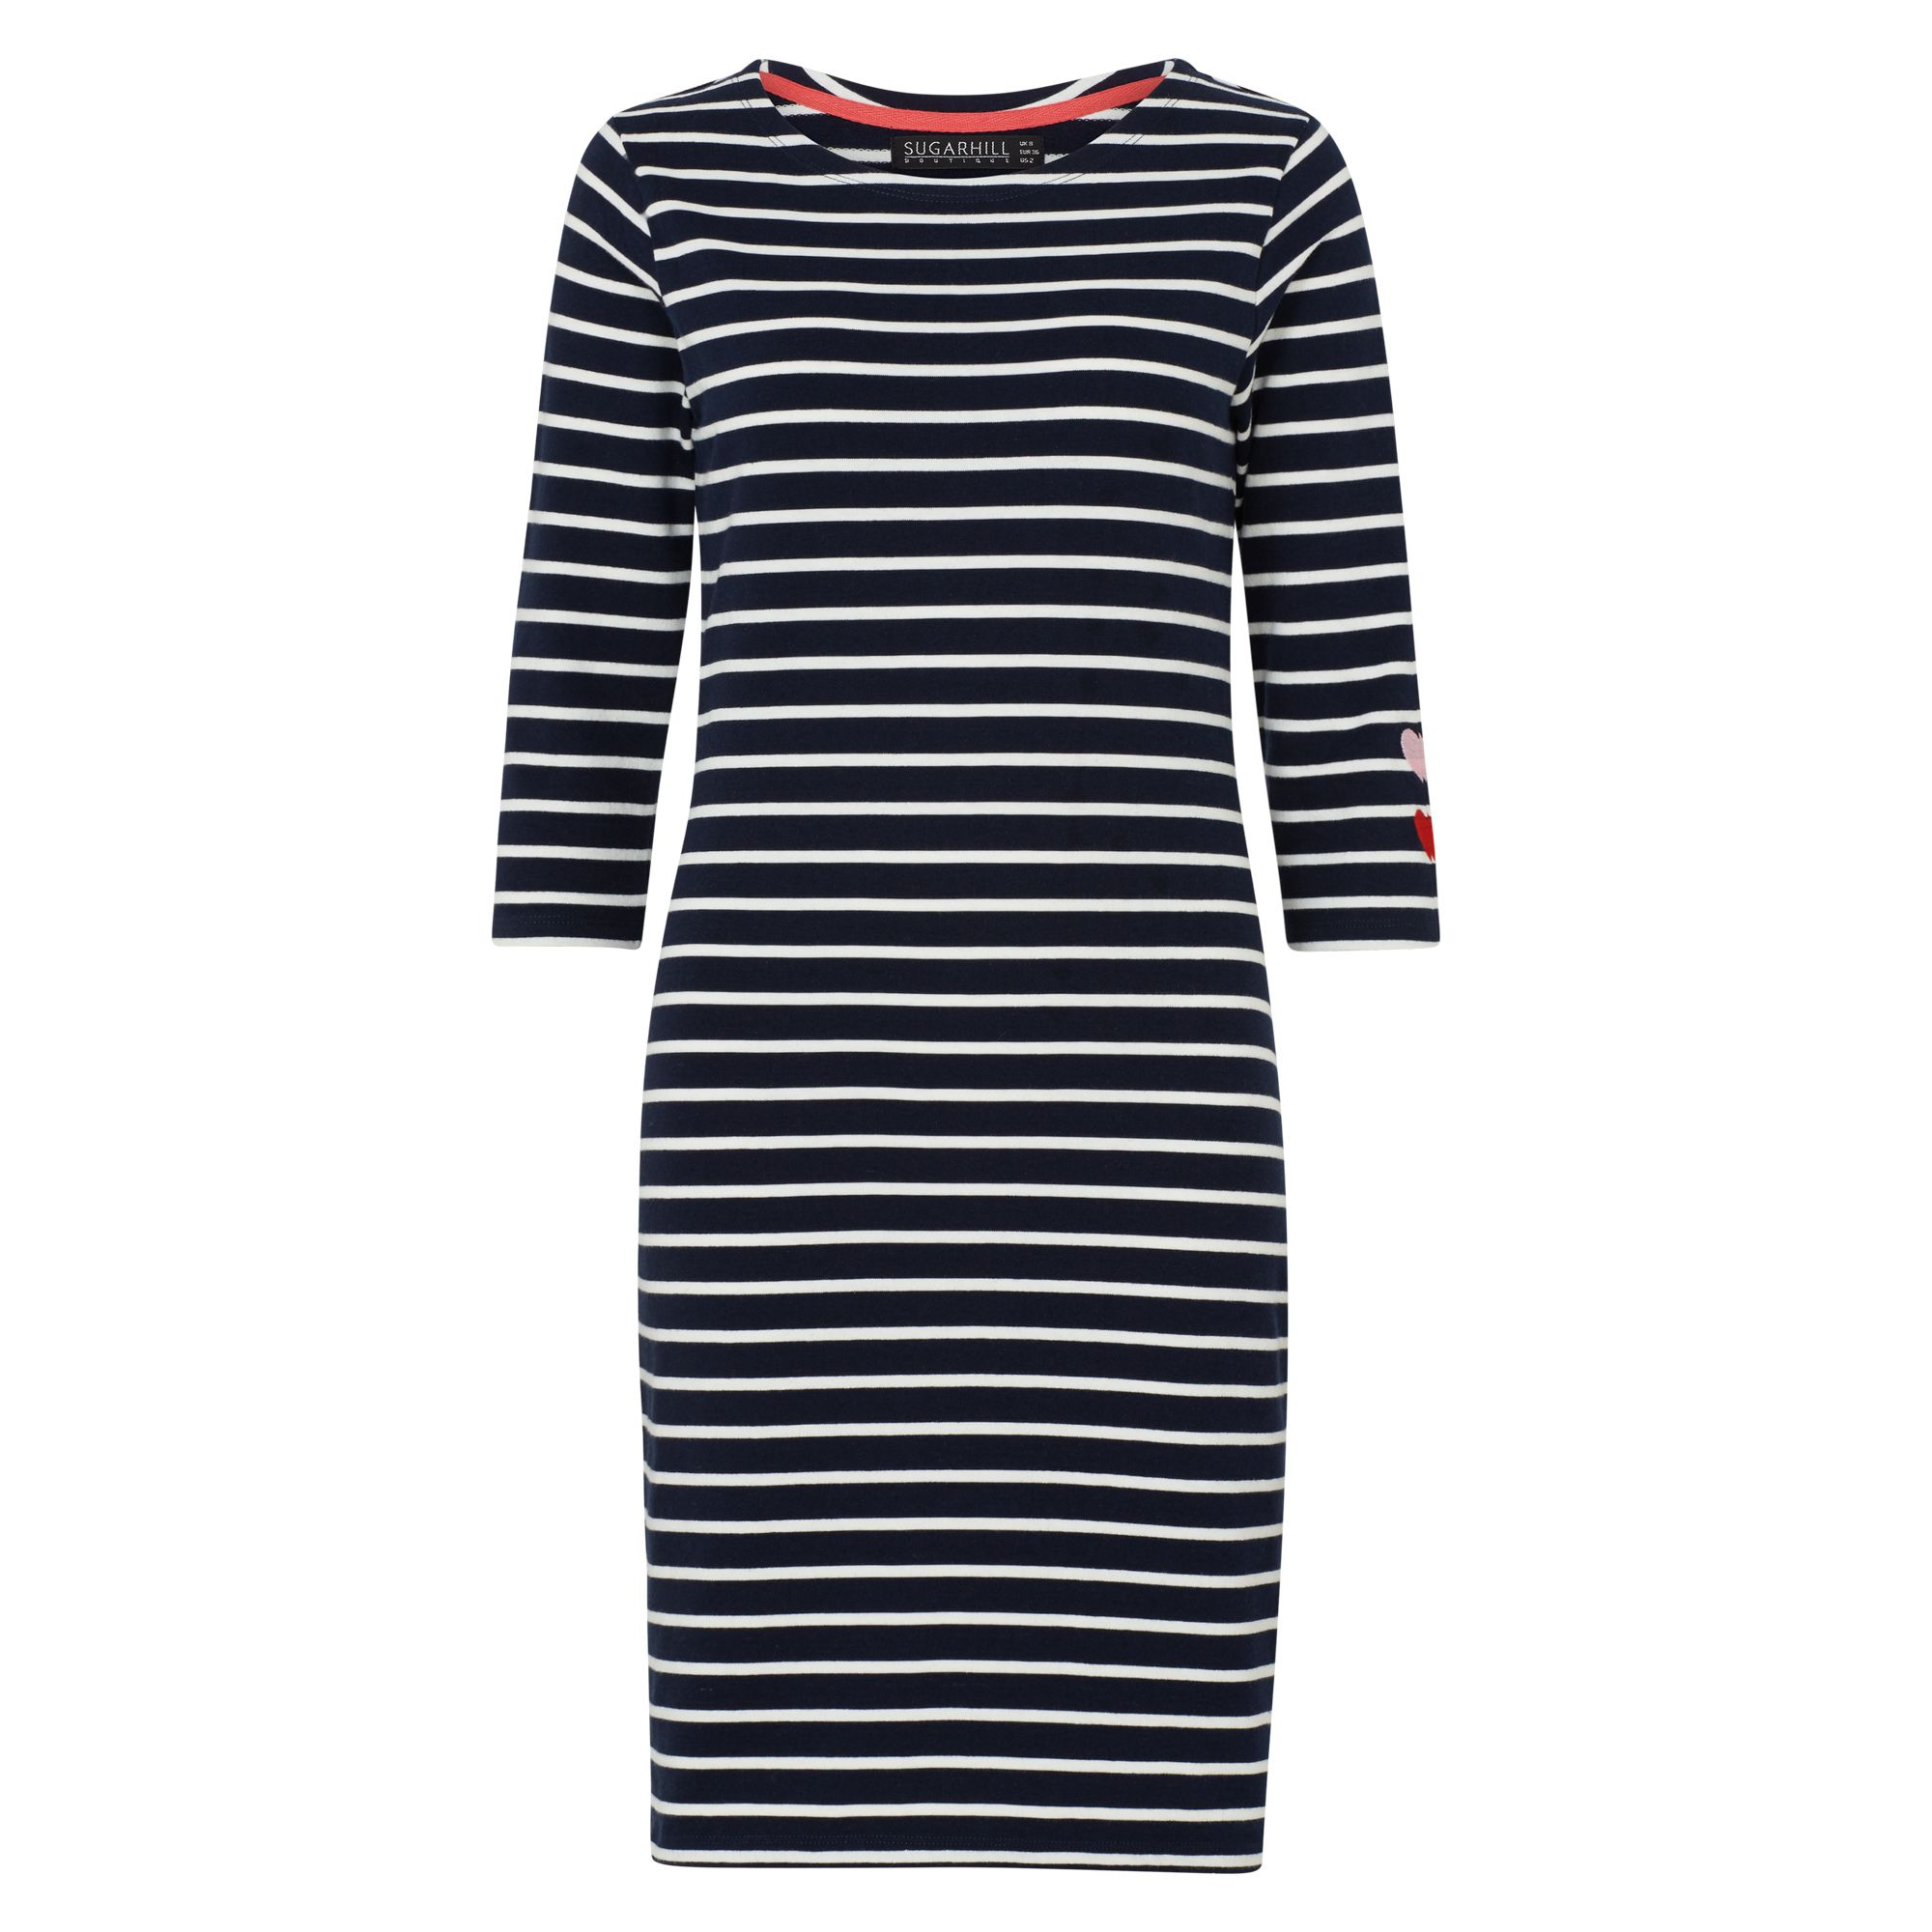 Sugarhill Boutique Brighton Double Love Dress, Blue